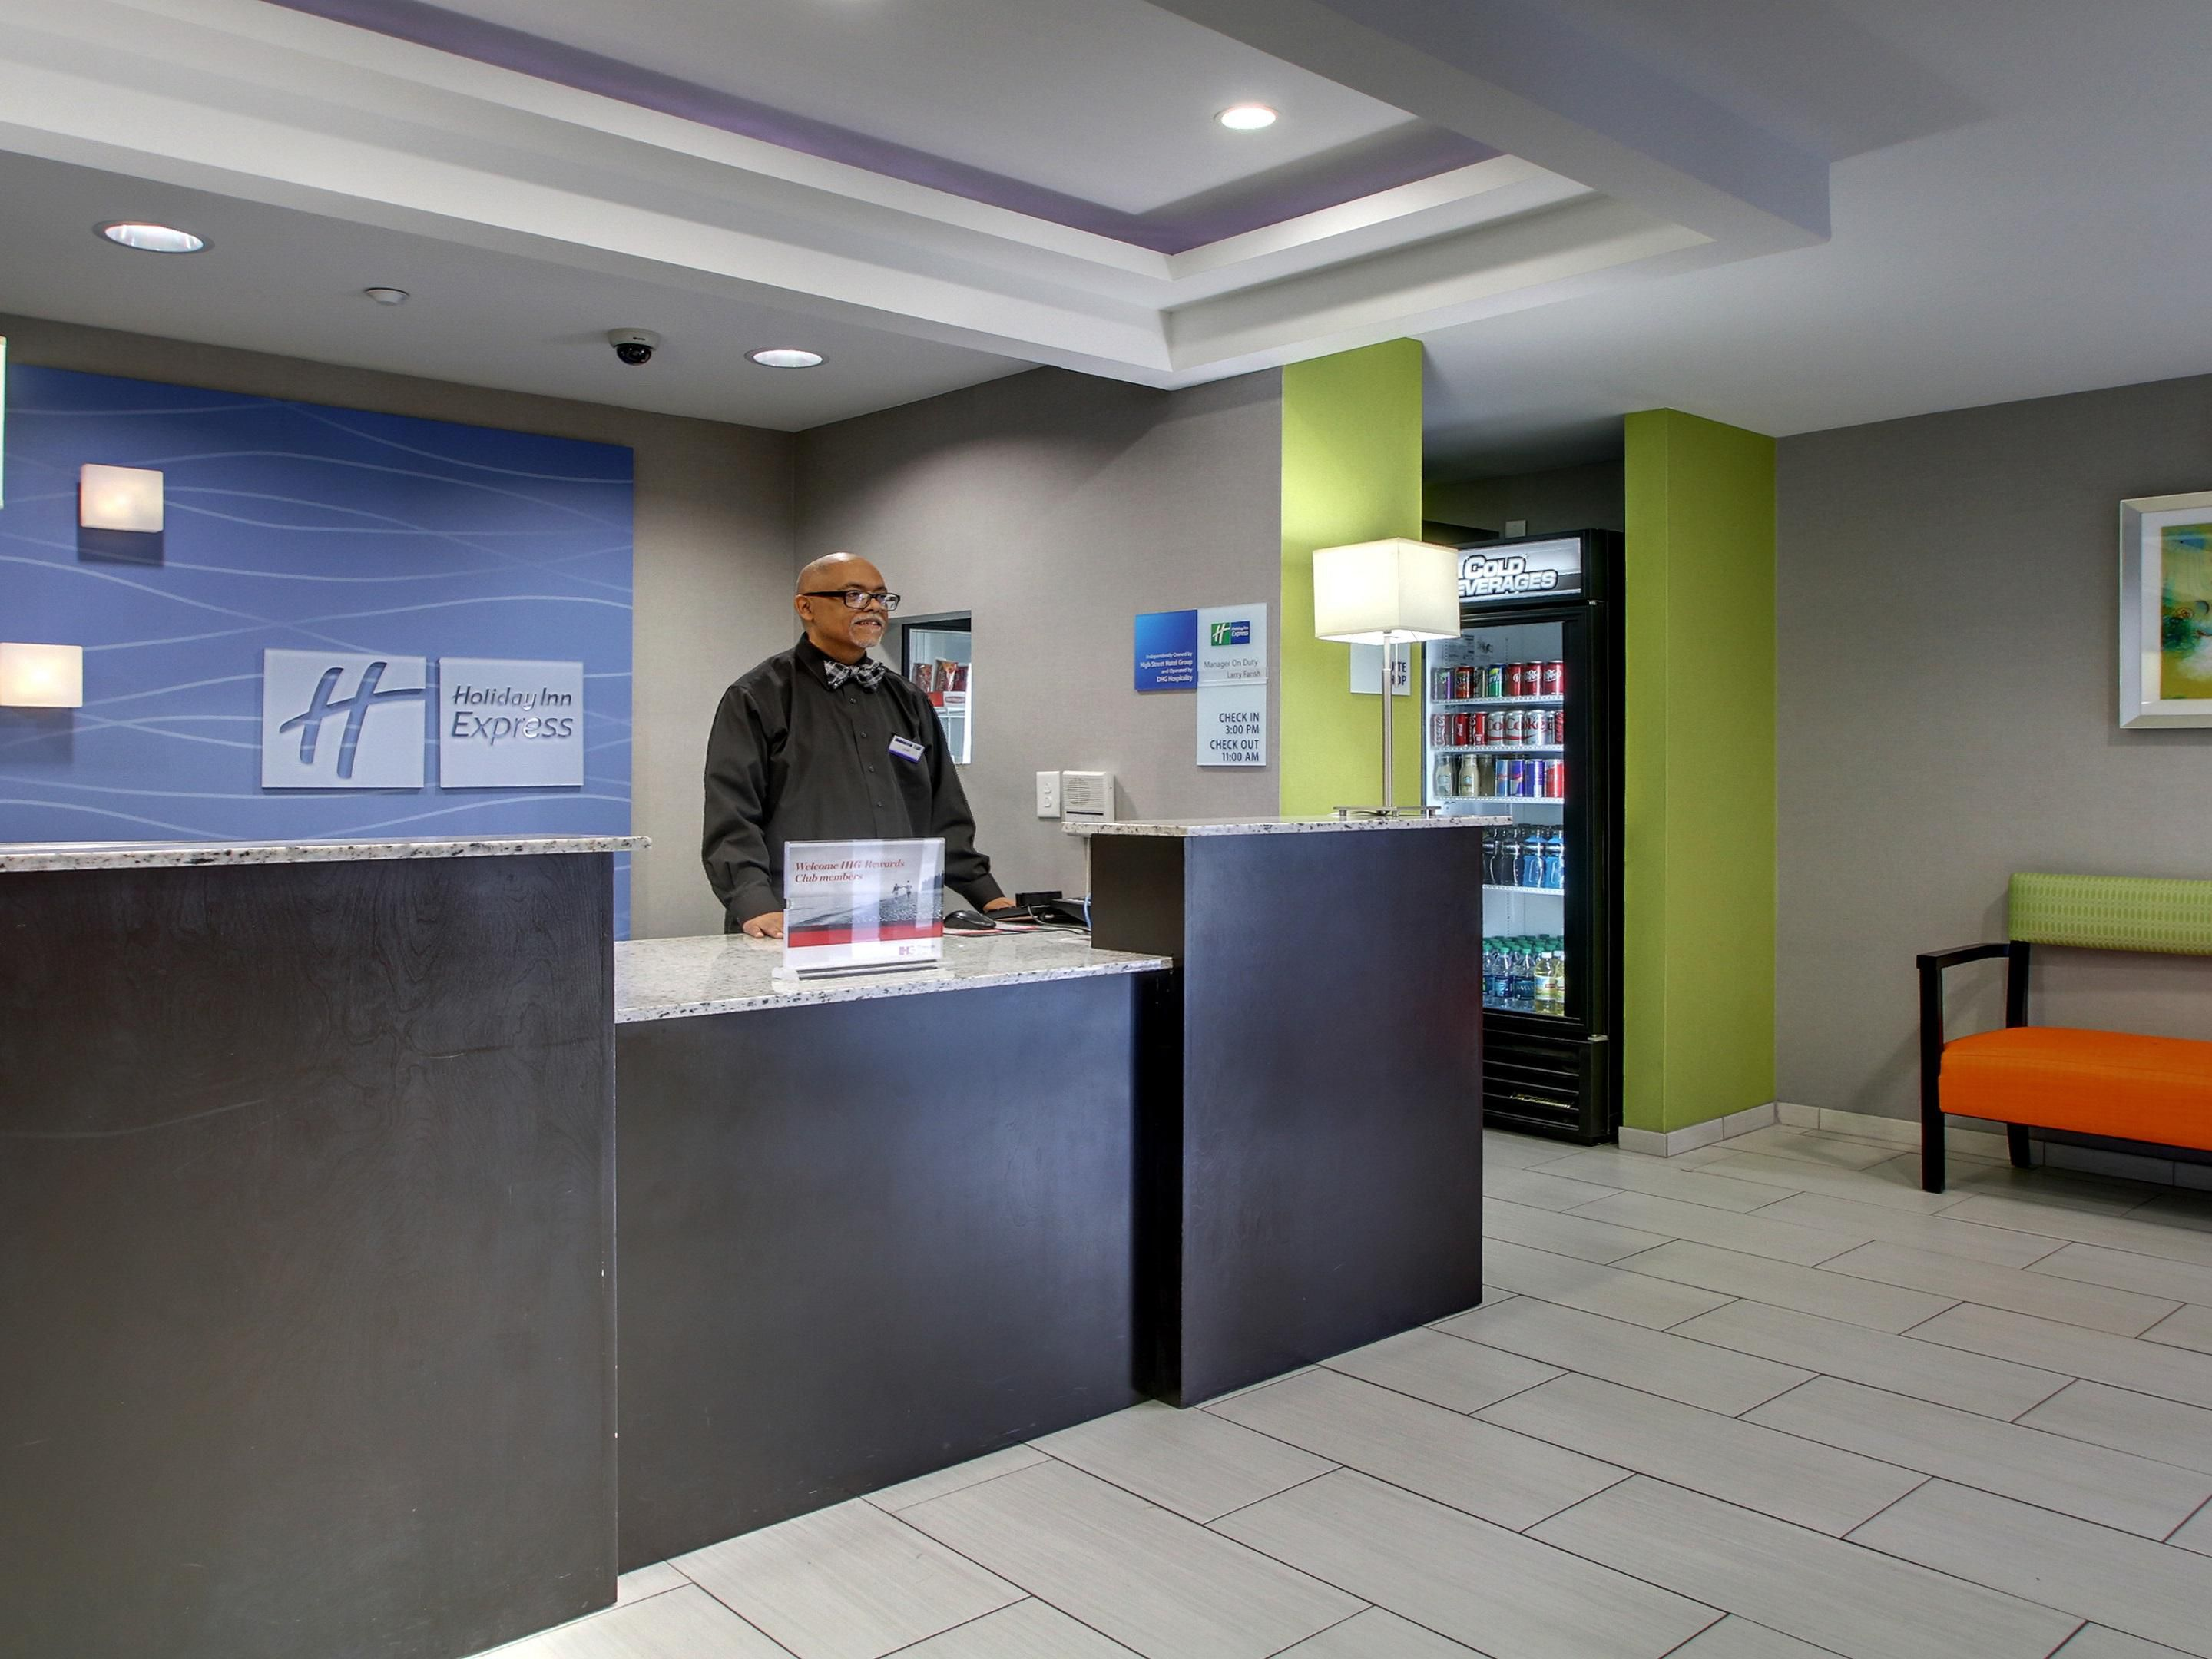 Welcome to the Holiday Inn Express and Suites Downtown Jackson, MS